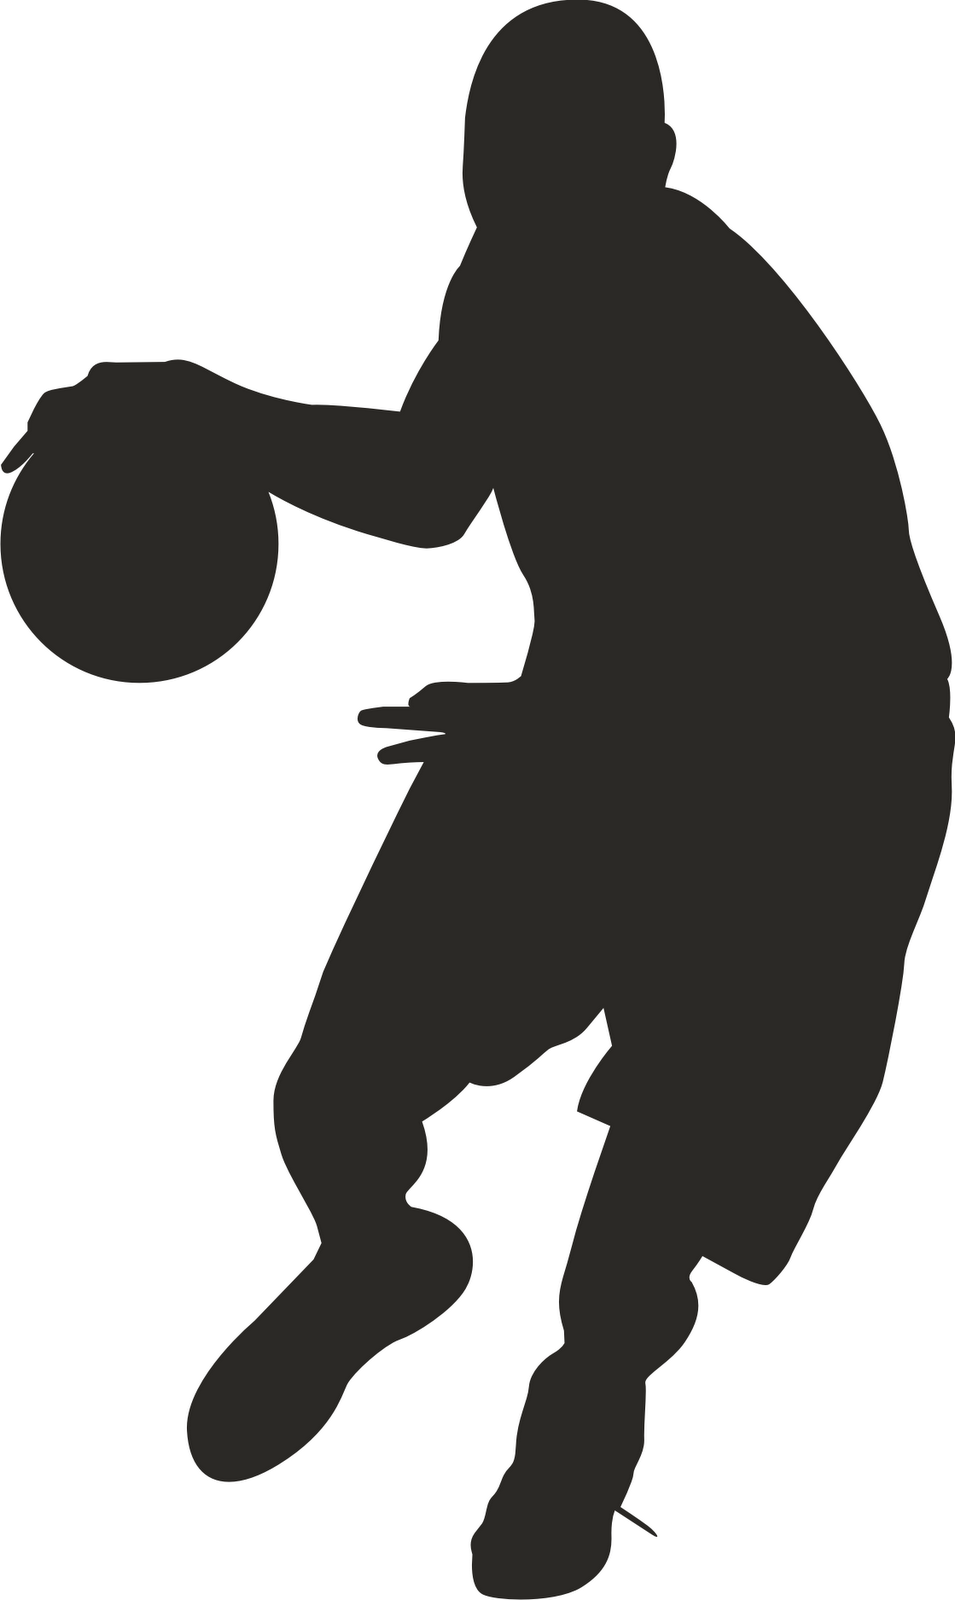 clipart basketball players clipart panda free clipart images [ 955 x 1600 Pixel ]